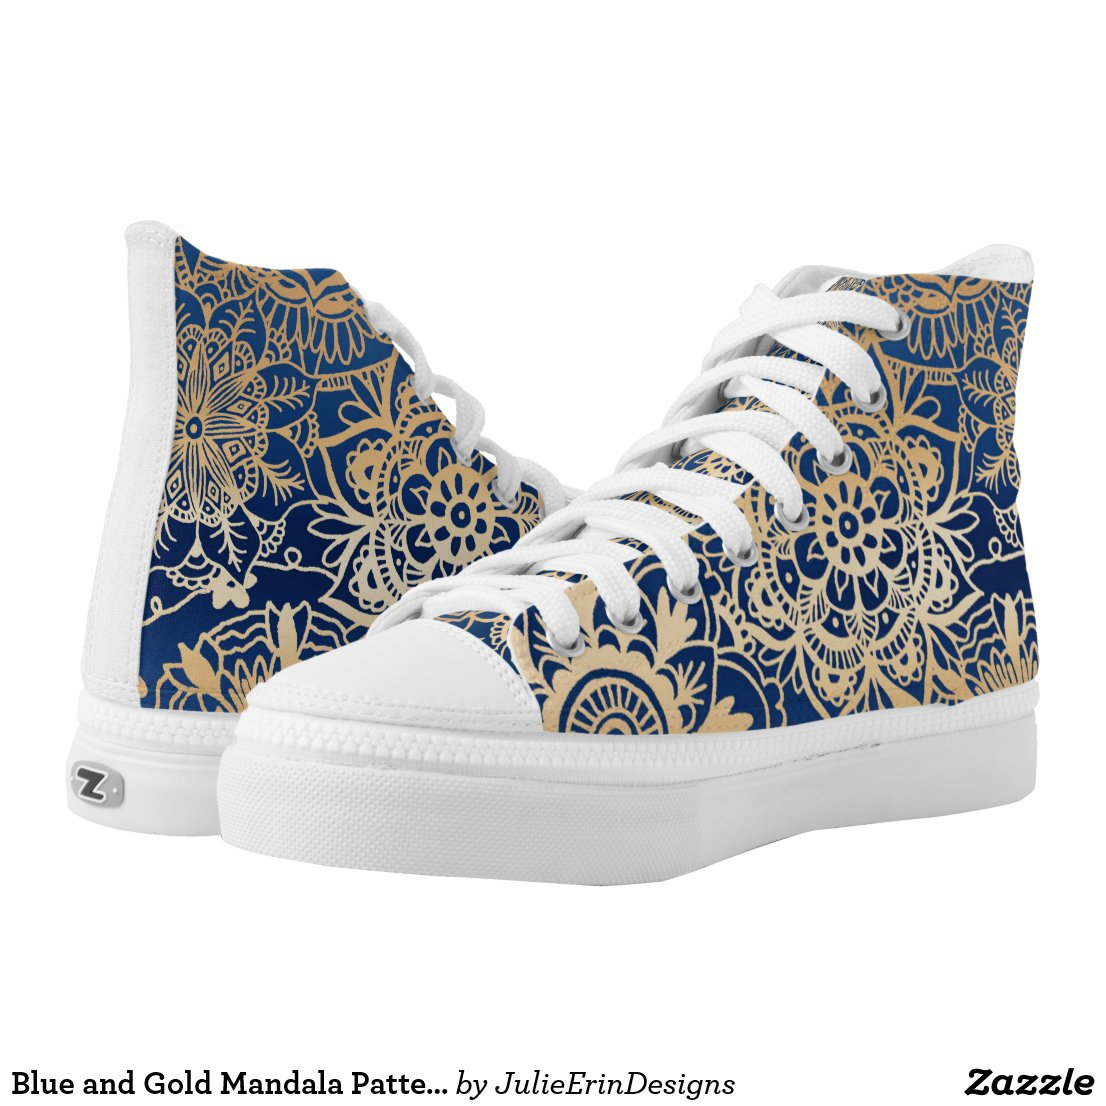 Blue and Gold Mandala Pattern High Top Sneakers